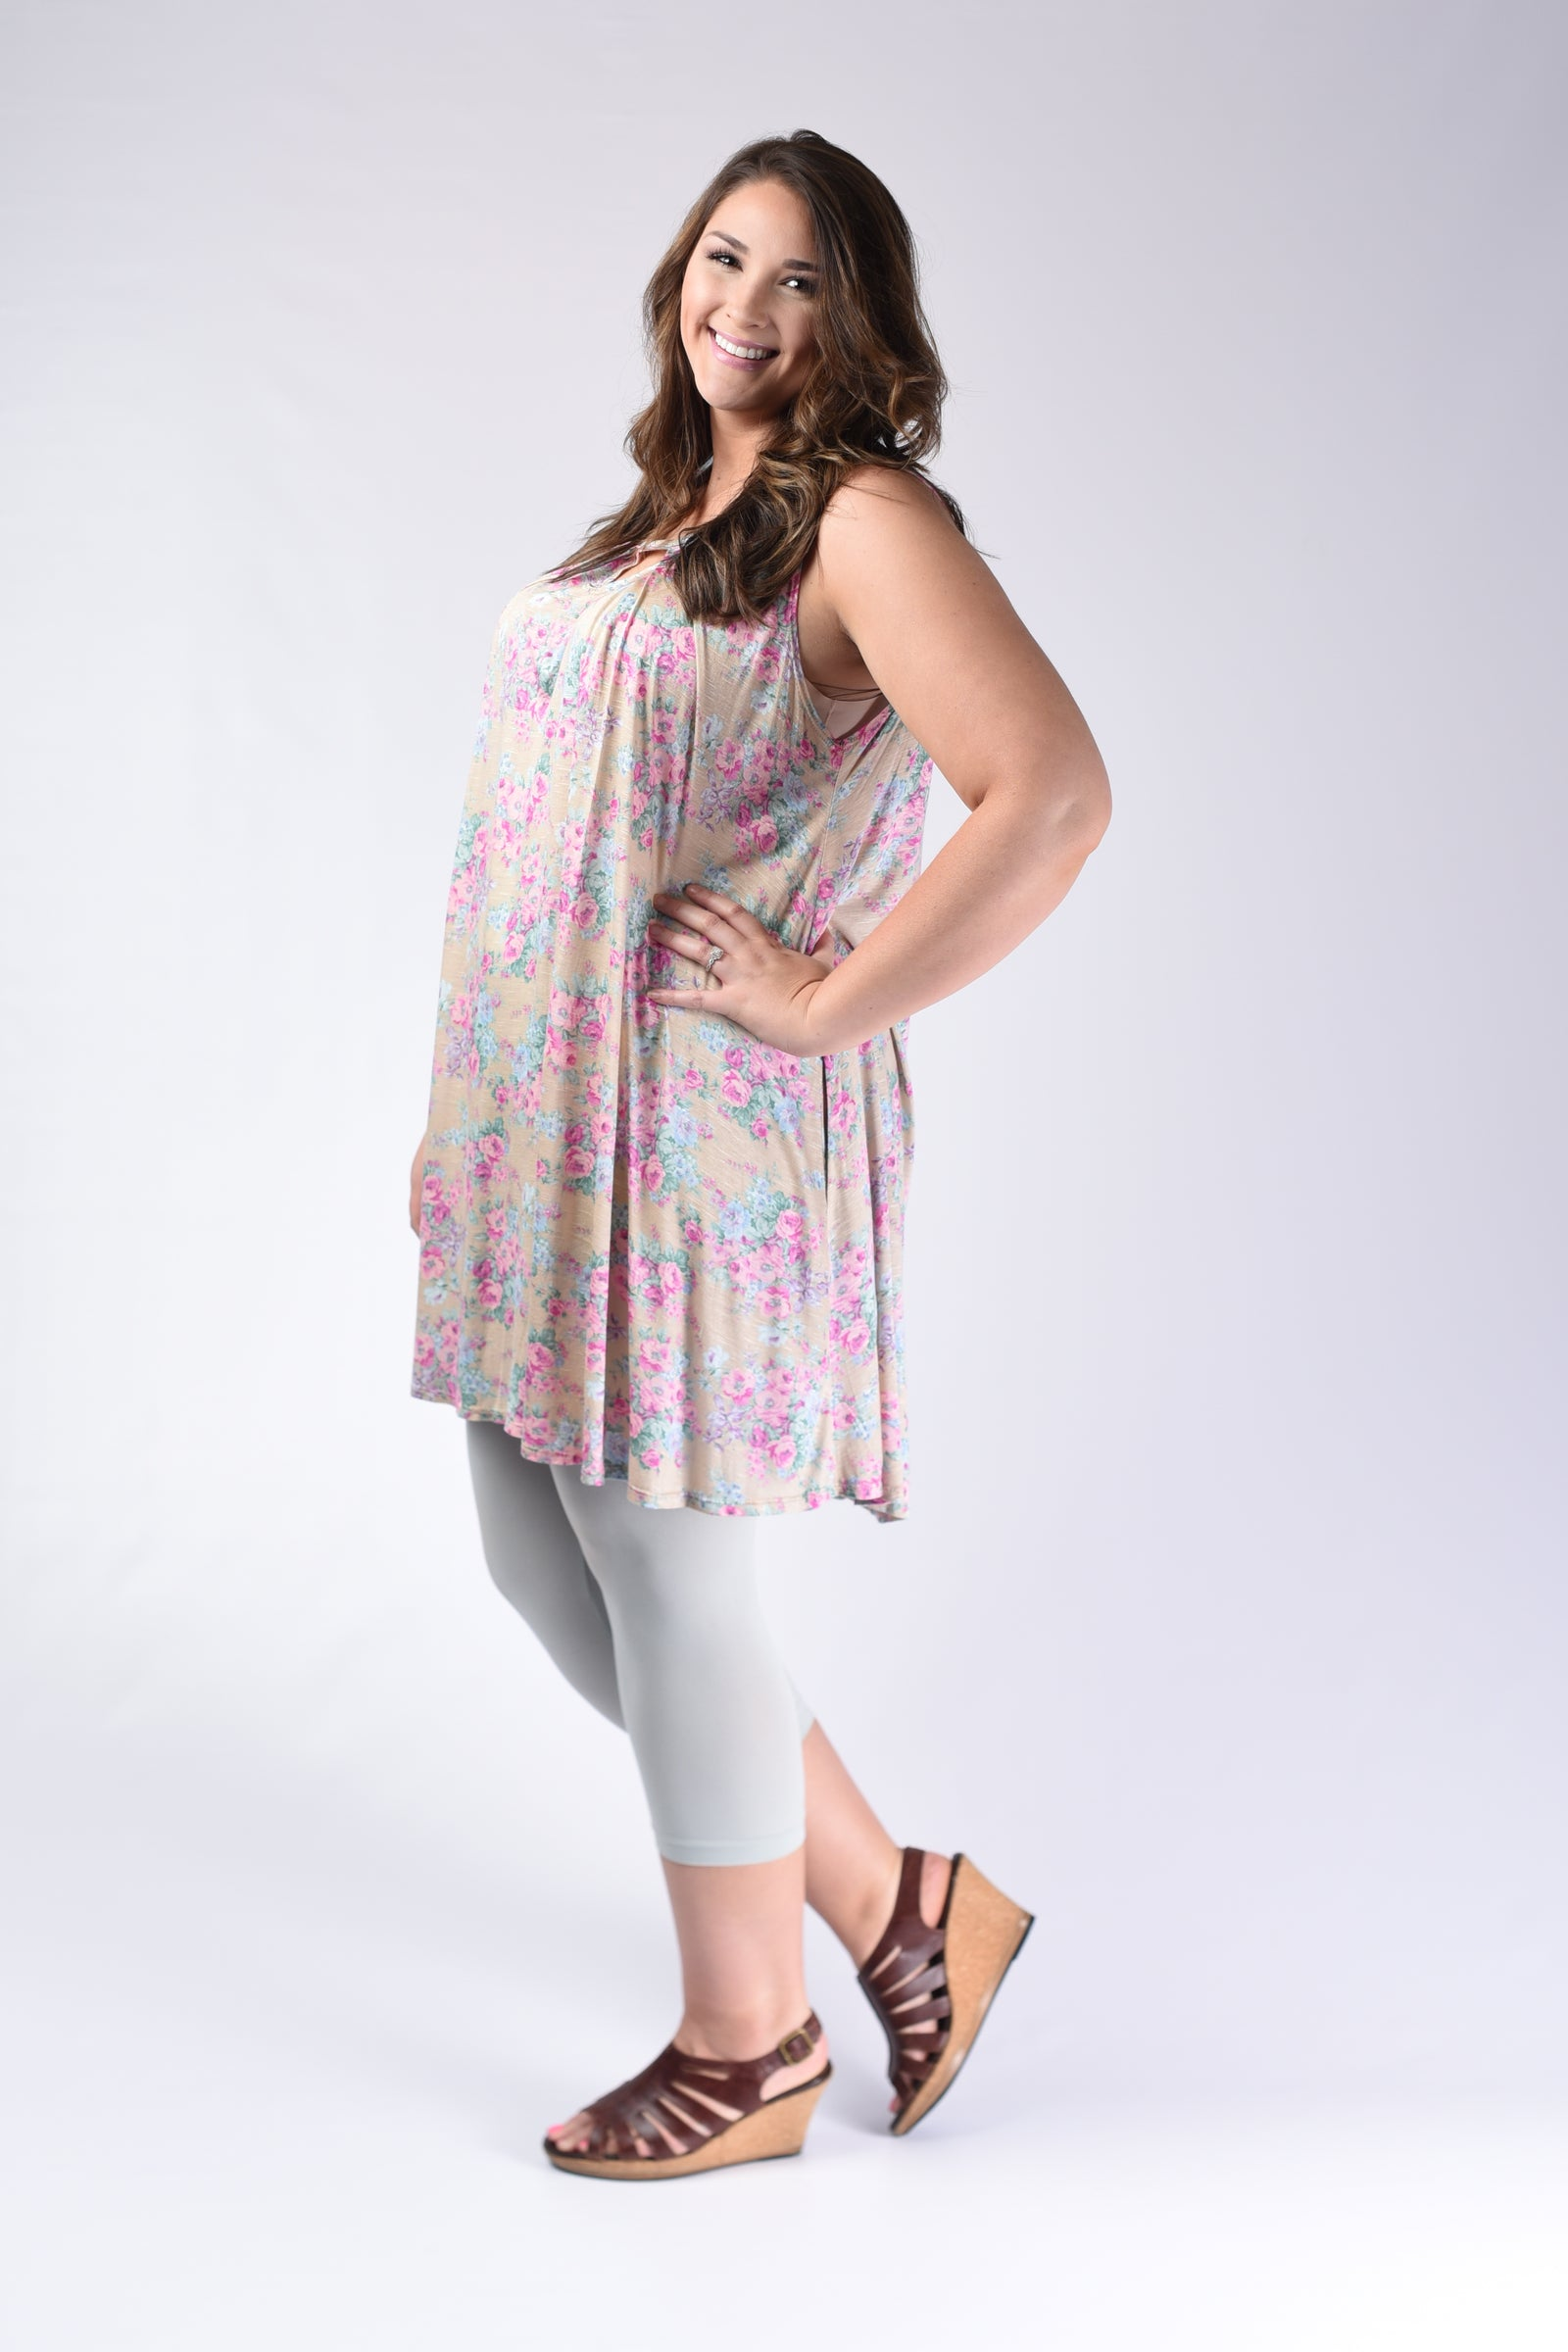 Khaki Pink Floral Dress - www.mycurvystore.com - Curvy Boutique - Plus Size